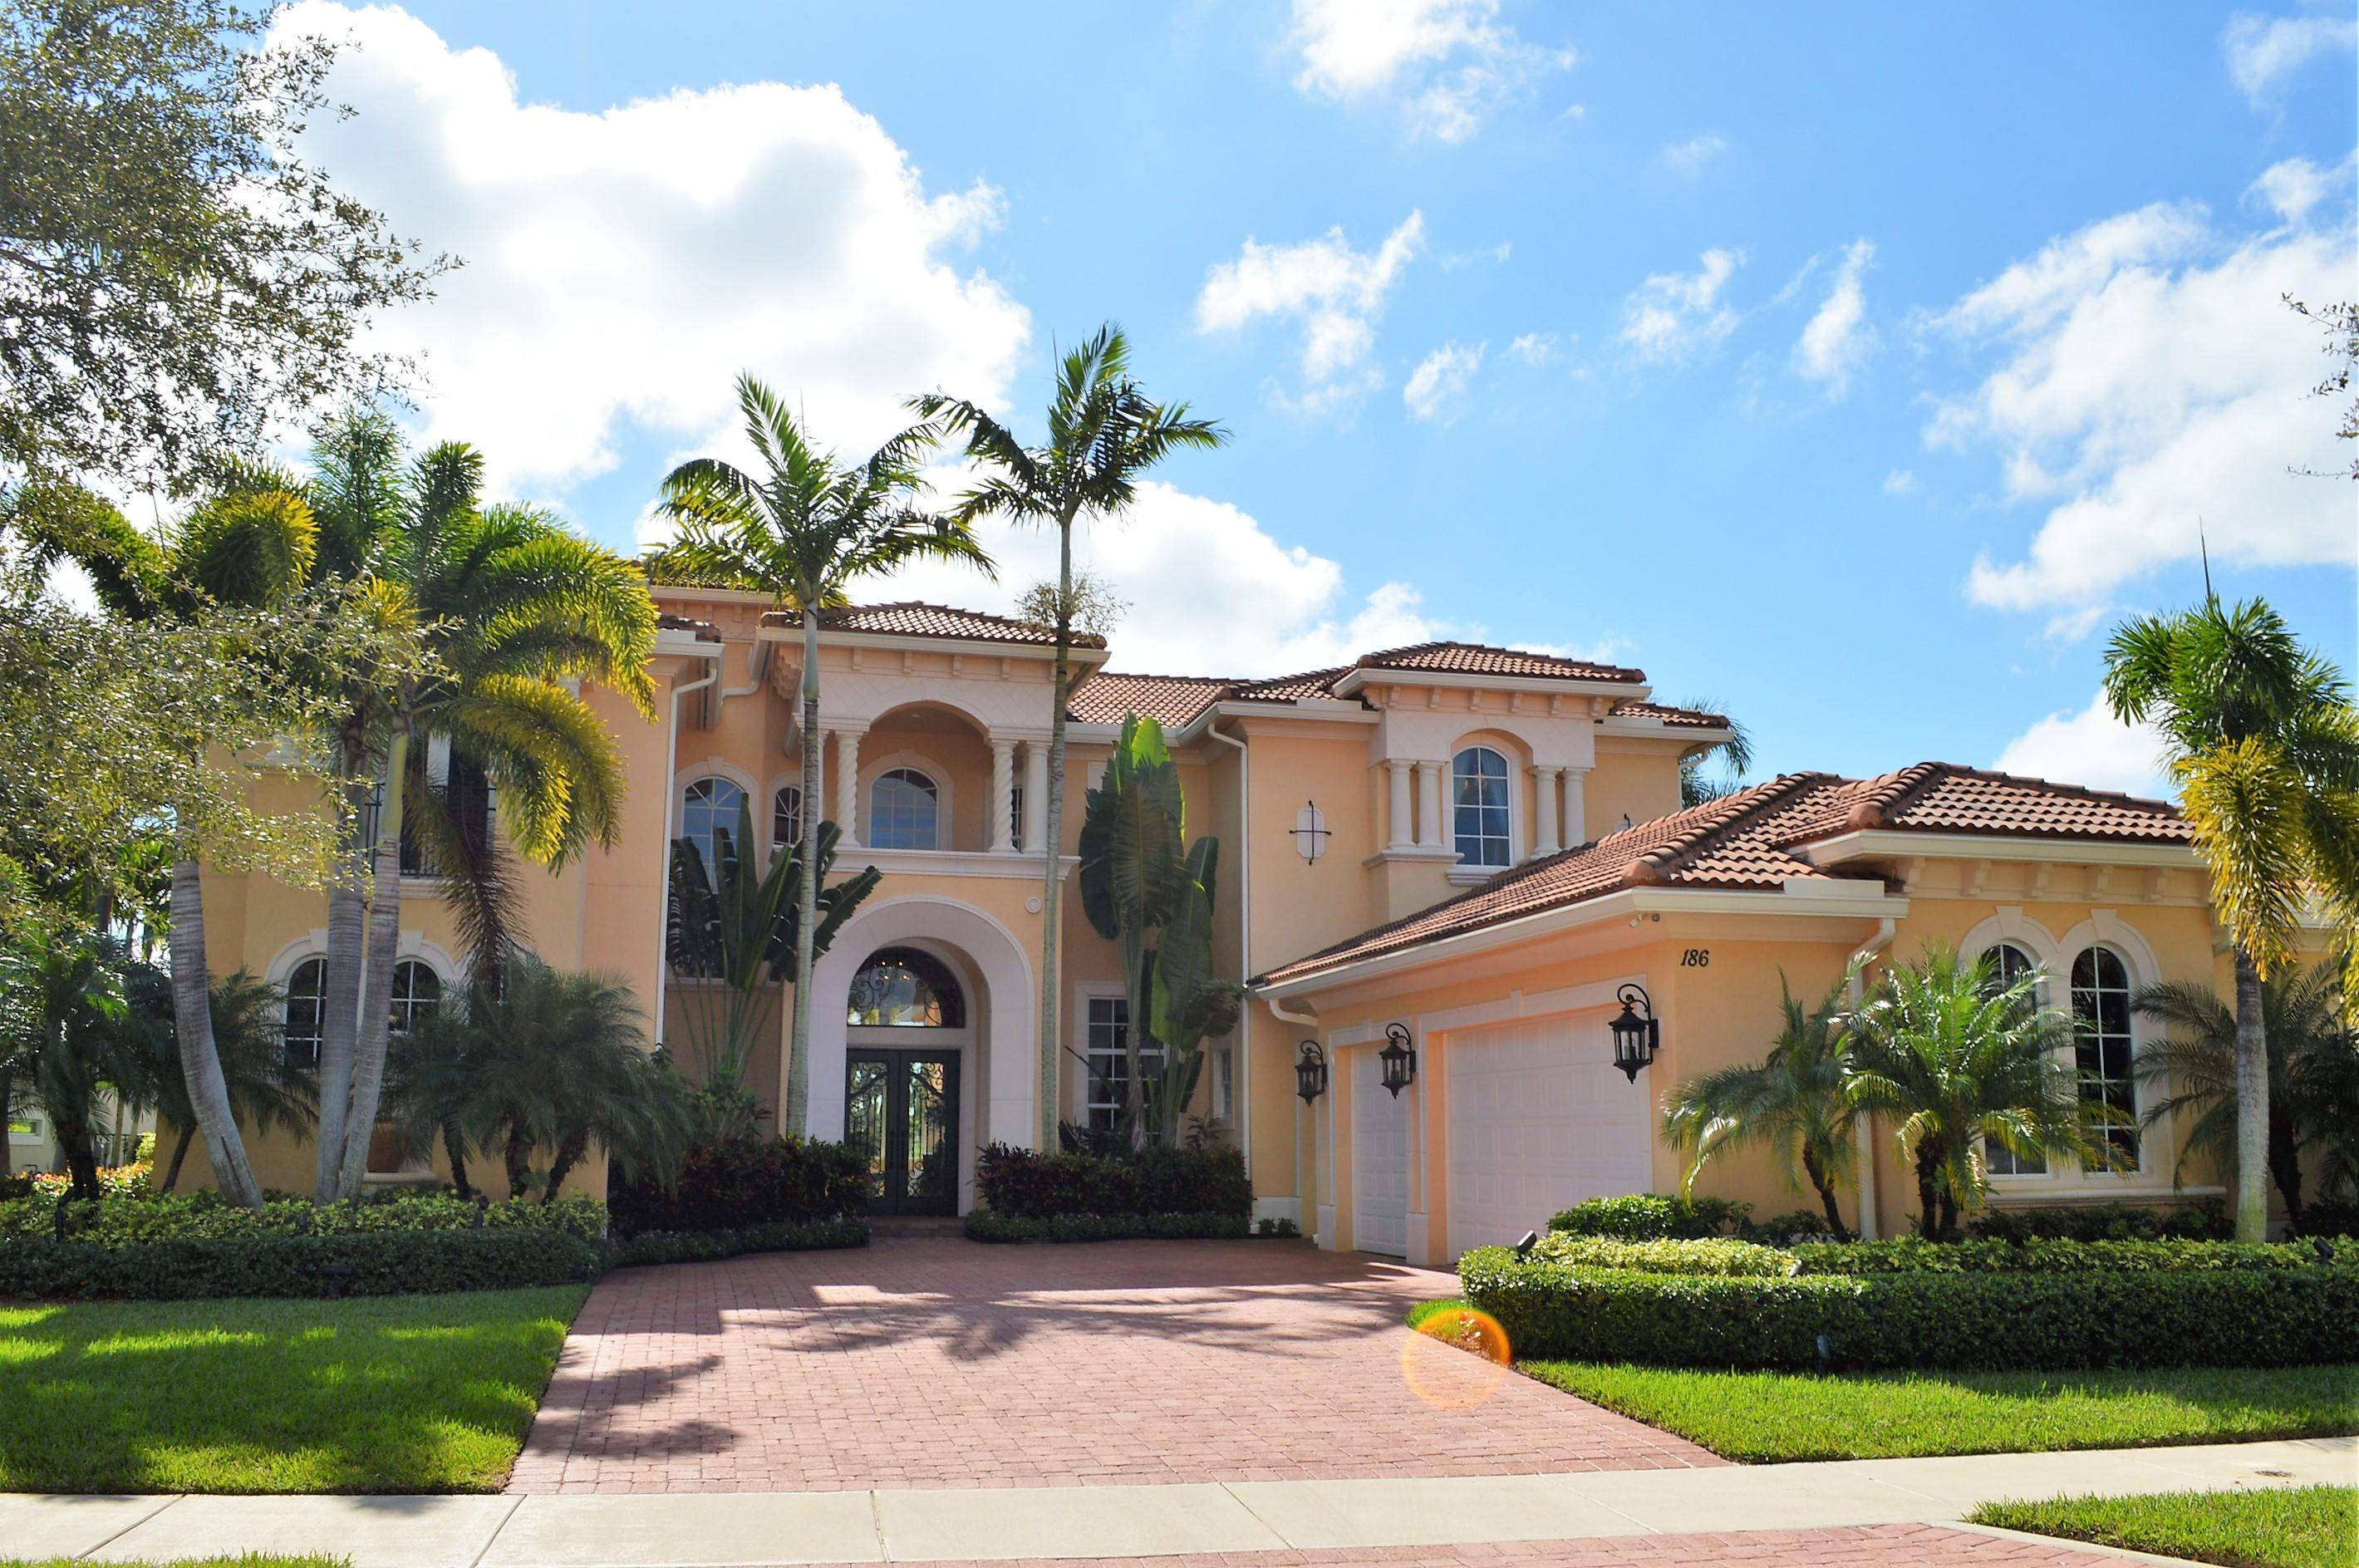 New Home for sale at 186 Elena Court in Jupiter